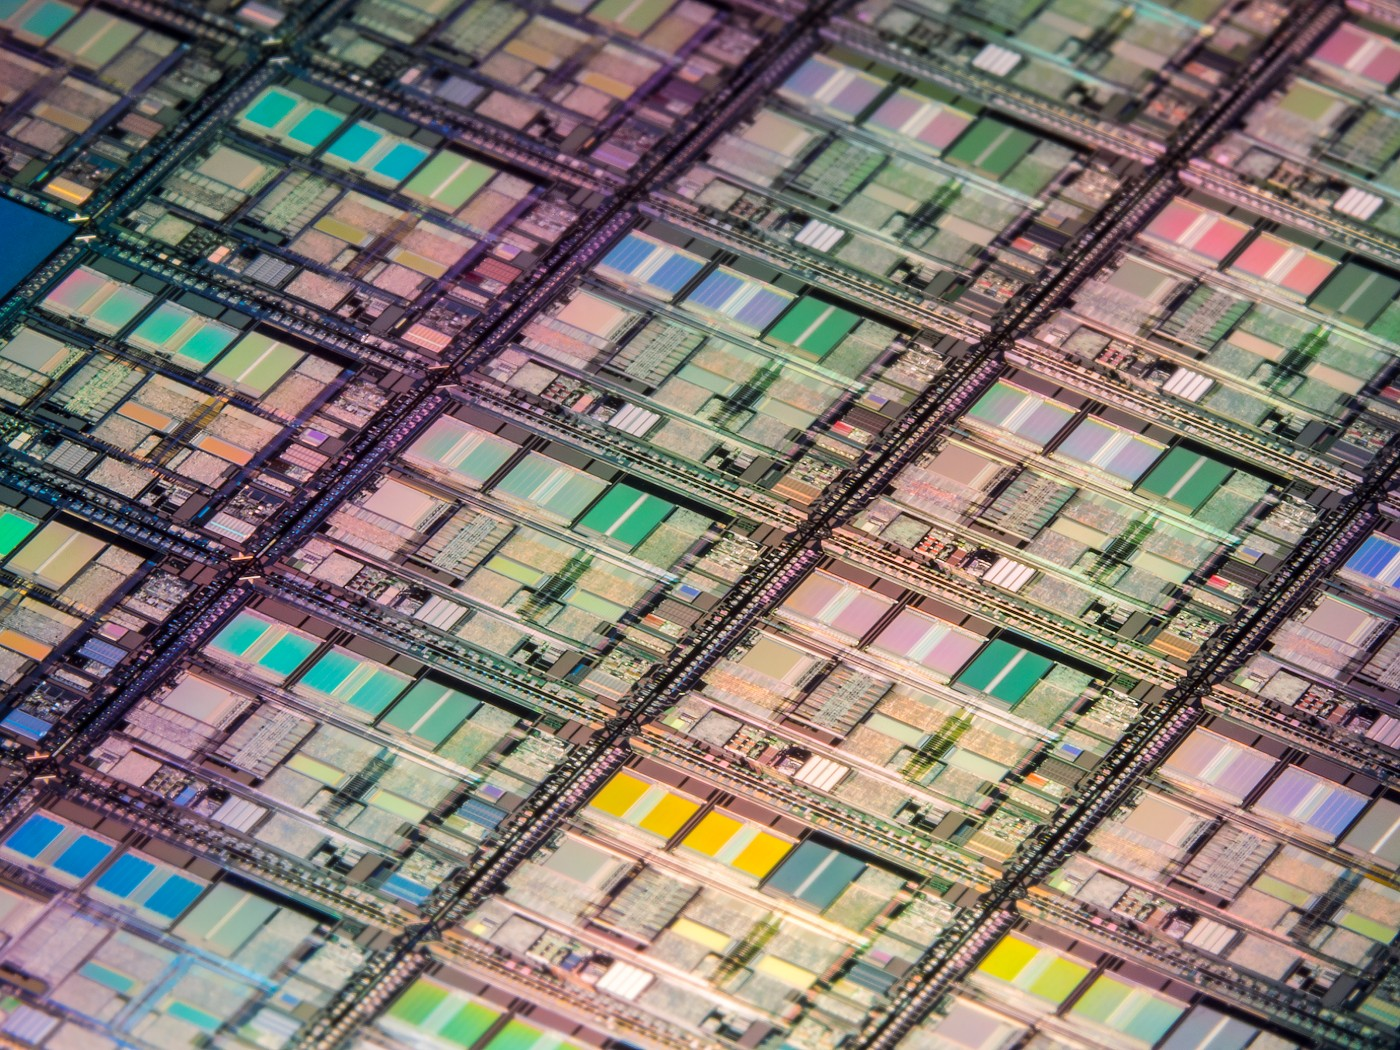 https://tickertapecdn.tdameritrade.com/assets/images/pages/md/Semiconductors: AMD, Nvidia earnings preview